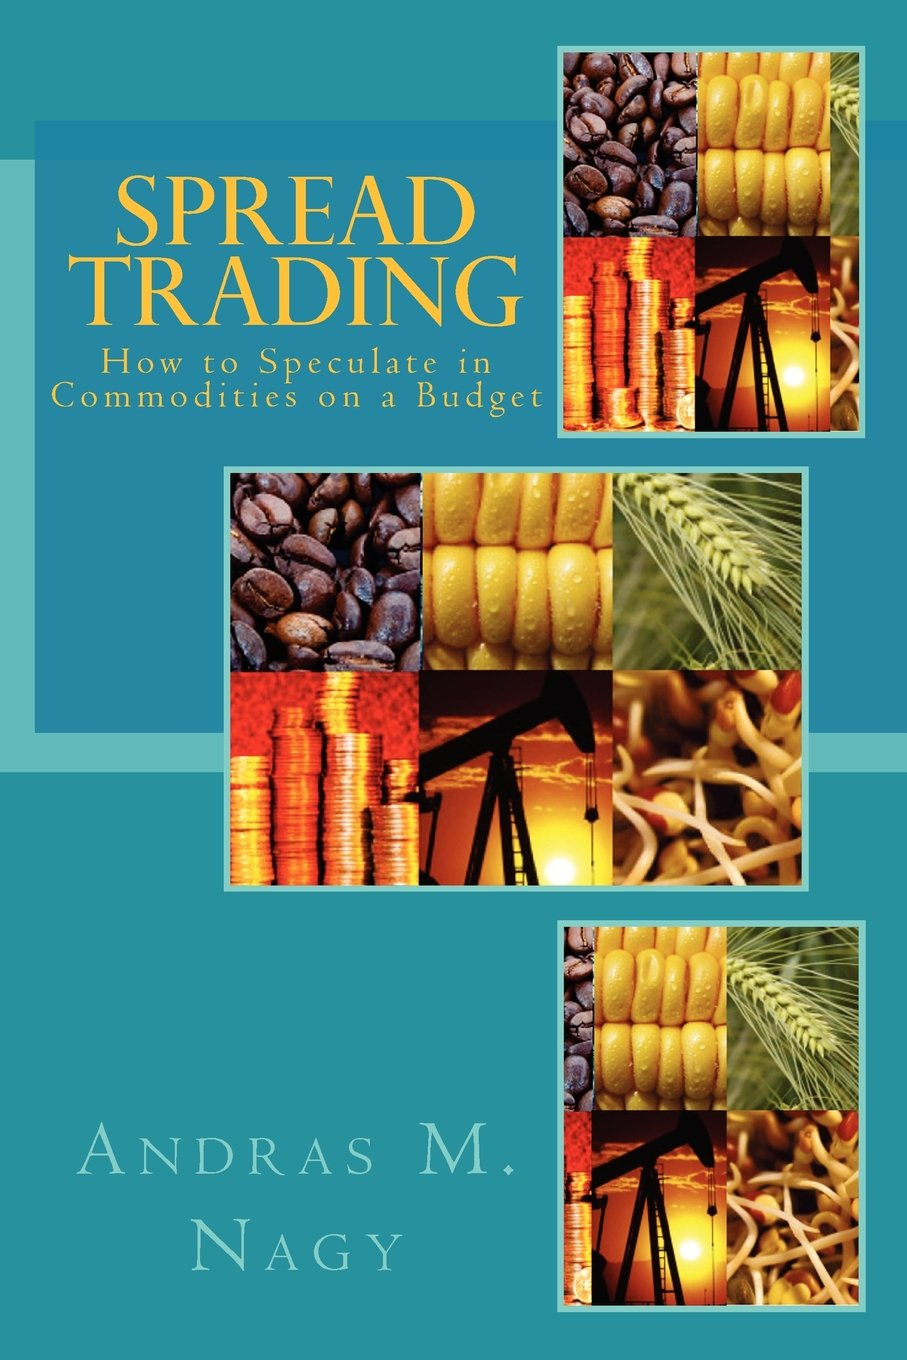 Spread Trading: How to Speculate in Commodities on a Budget